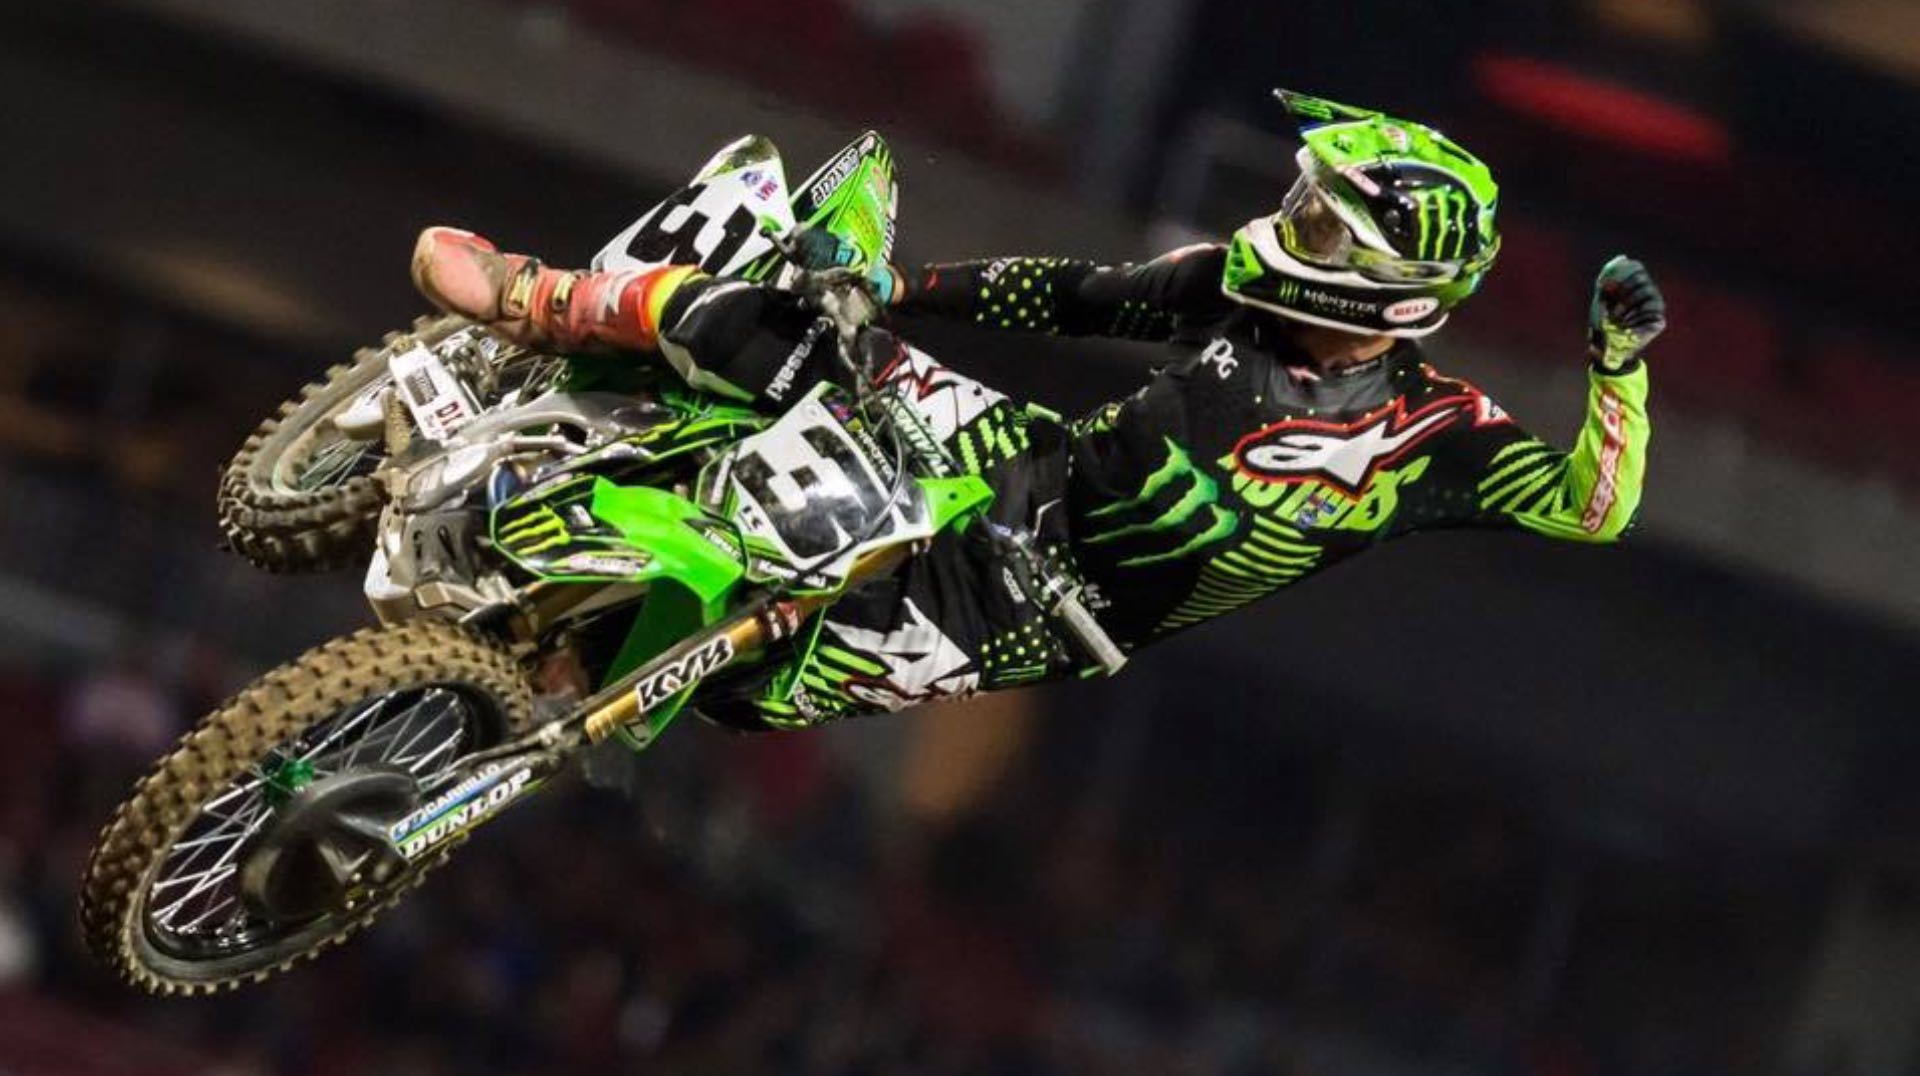 2017 Atlanta Supercross Preview: Kawasaki's Eli Tomac